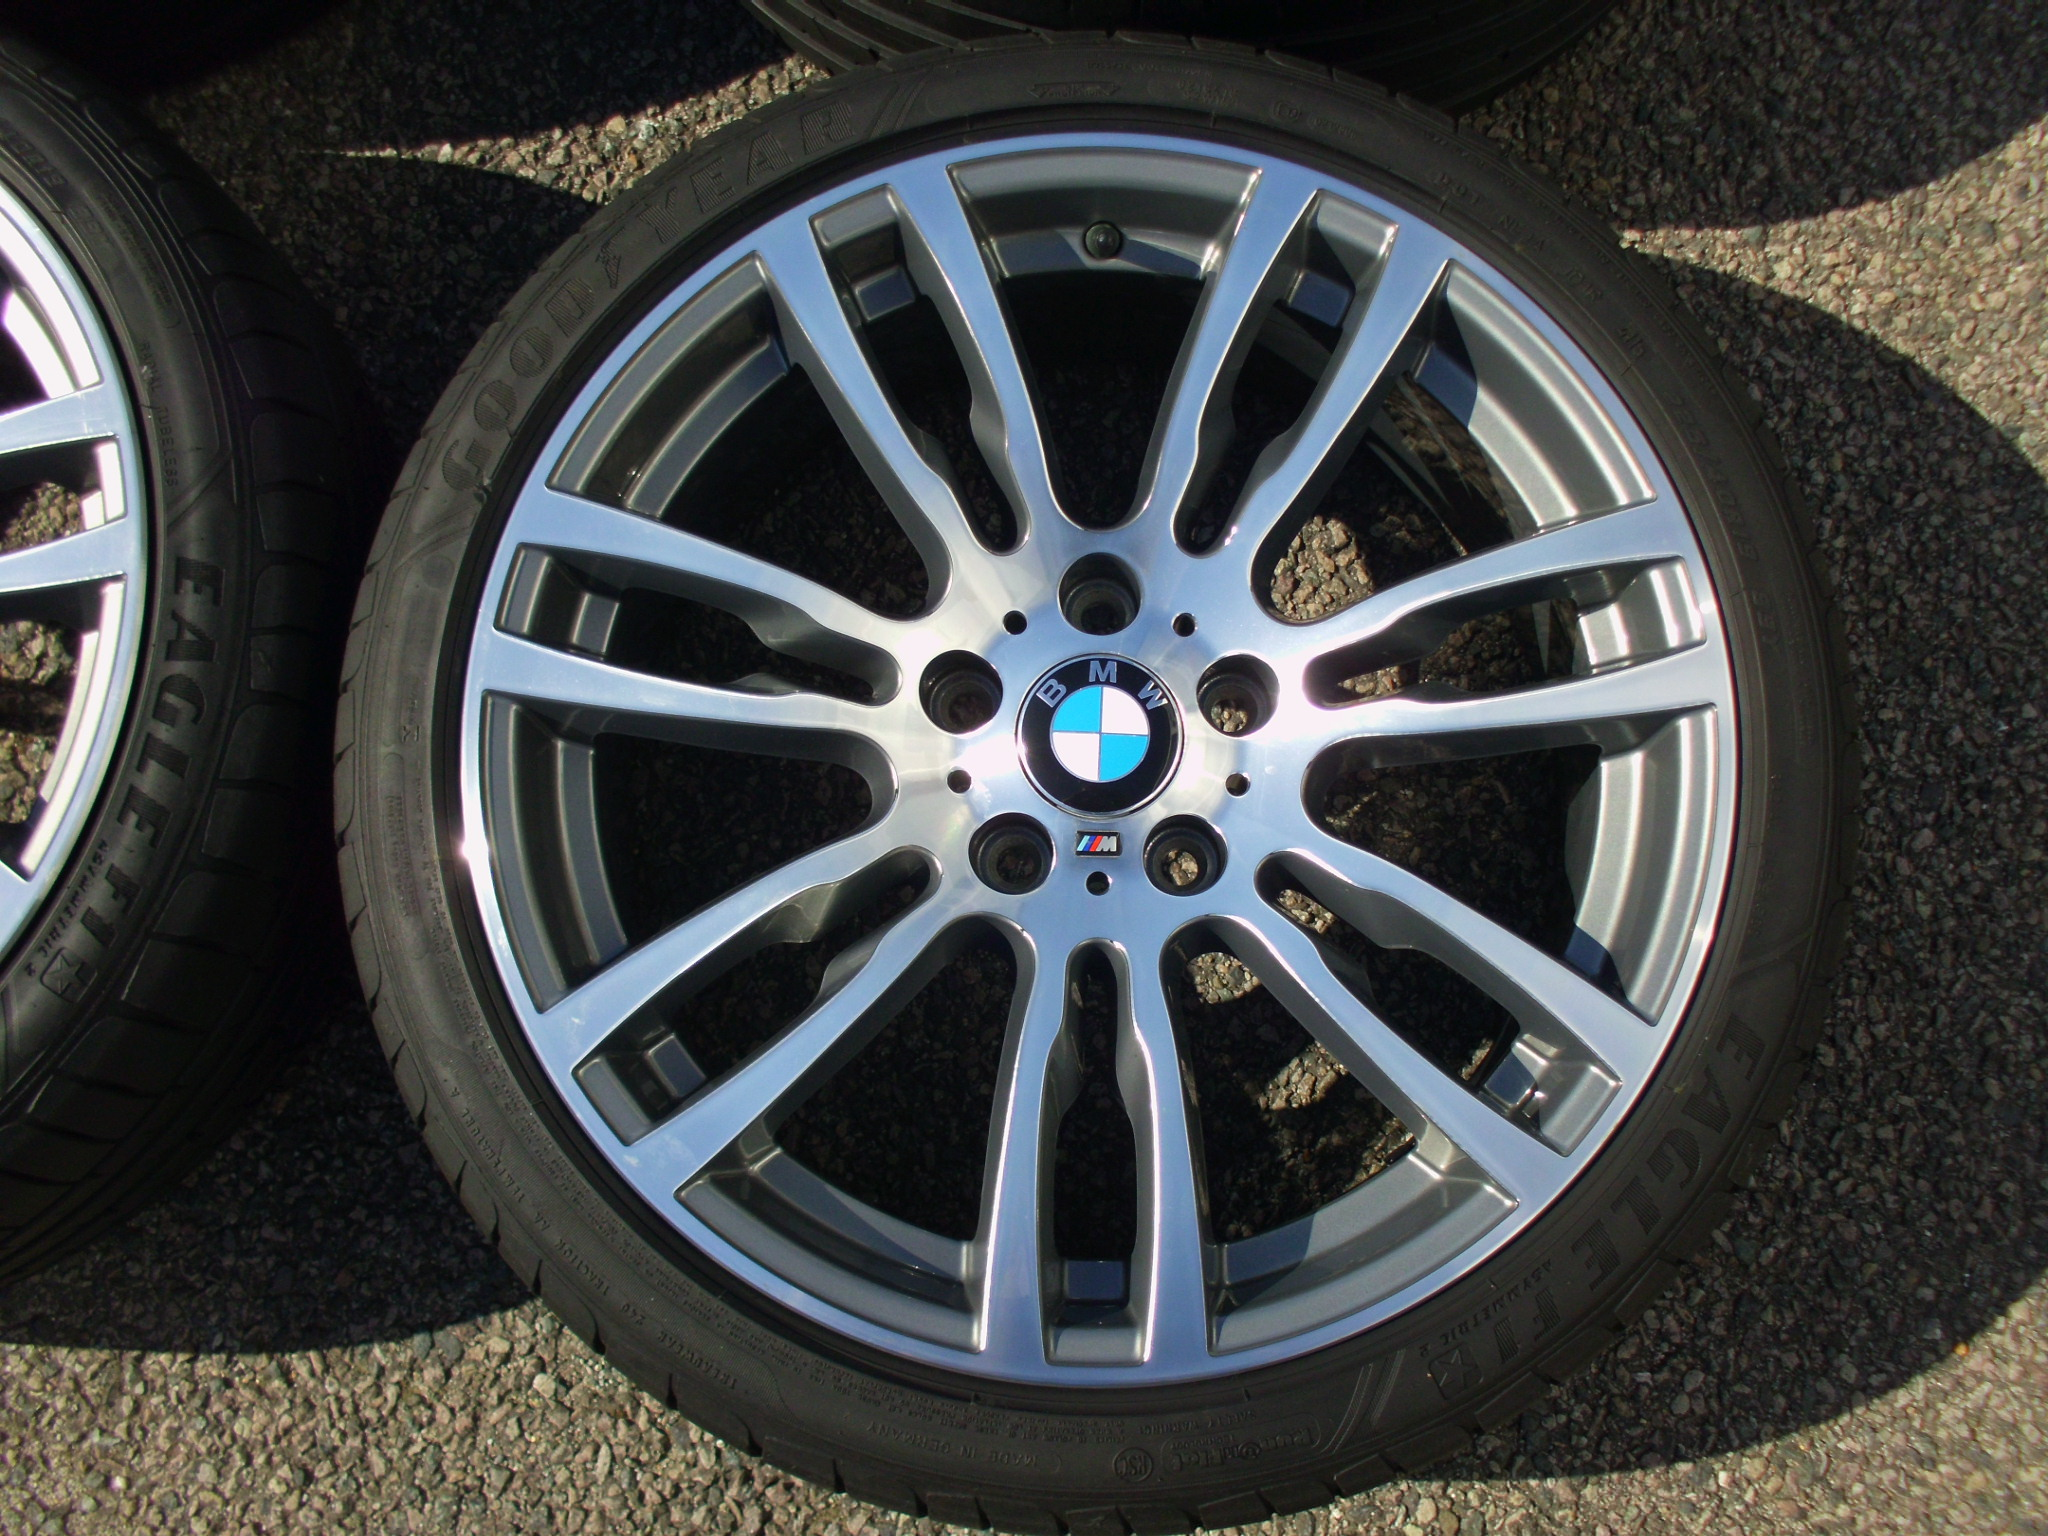 "USED 19"" GENUINE STYLE 403 F30/31 M DOUBLE SPOKE ALLOYS WHEELS, FULLY REFURBED INC GOOD GOODYEAR RUNFLATS"